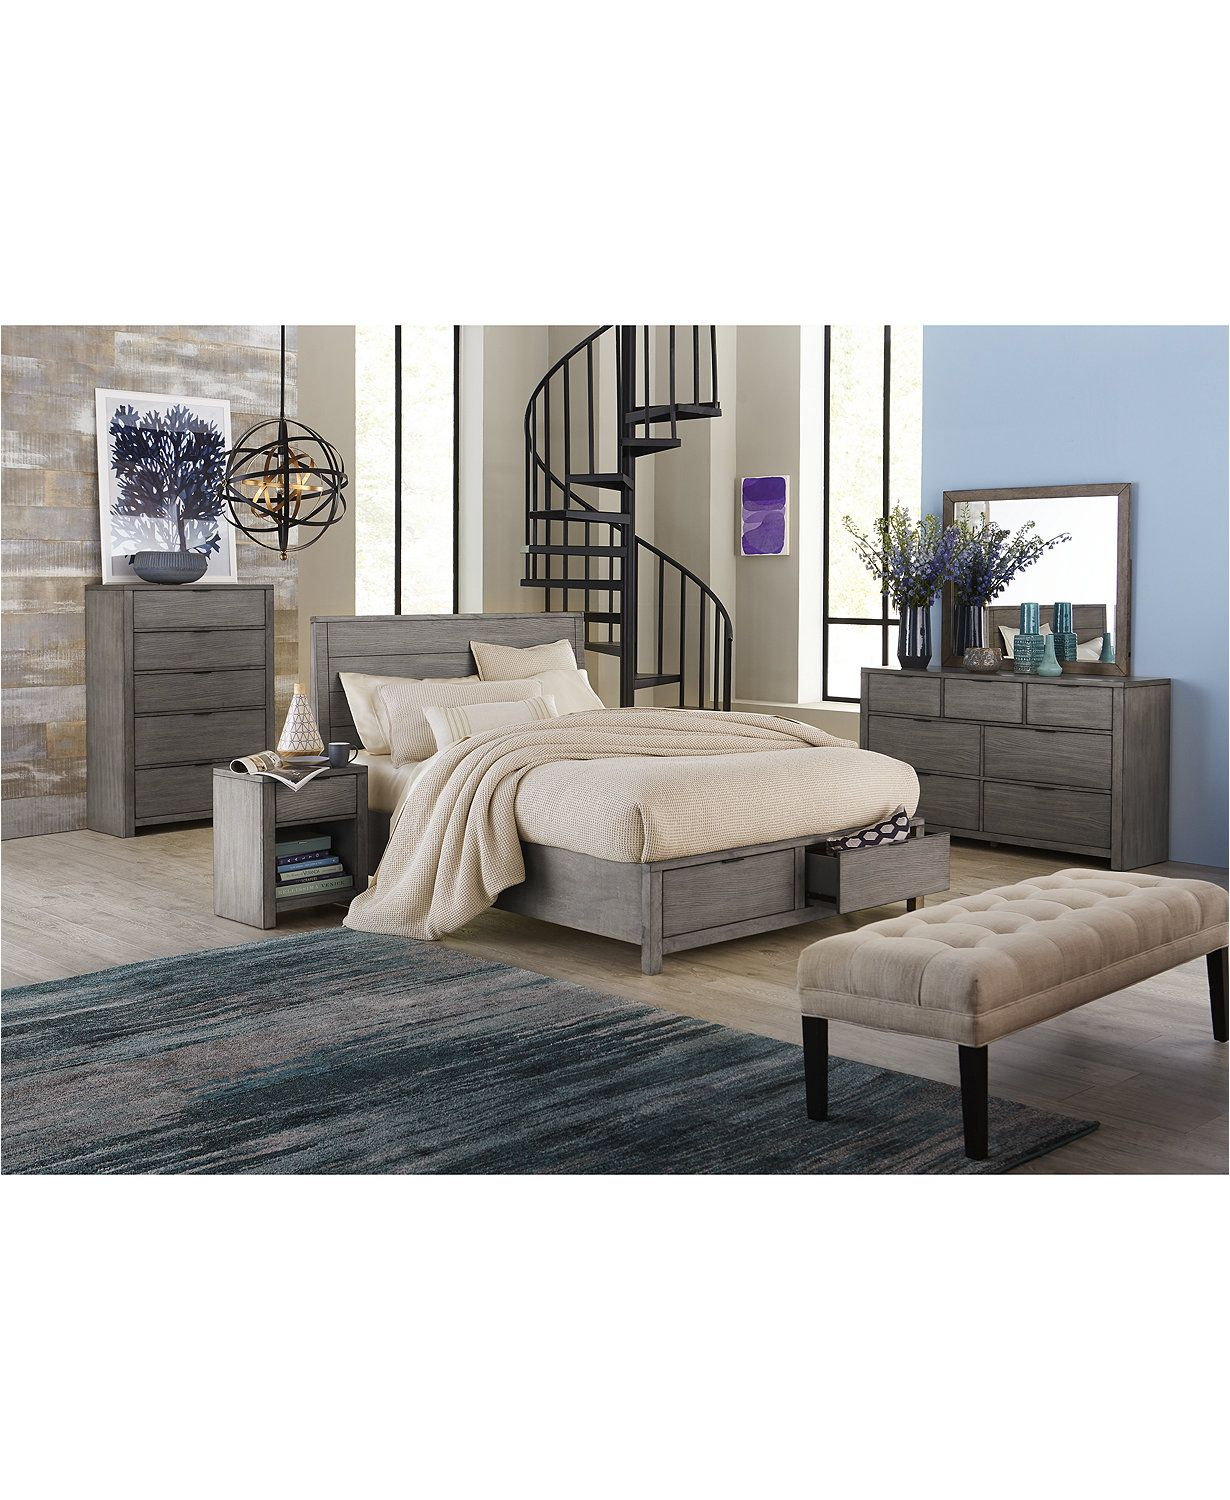 Tribeca Grey Storage Bedroom Furniture, 3-Pc. Set (King Bed, Dresser ...